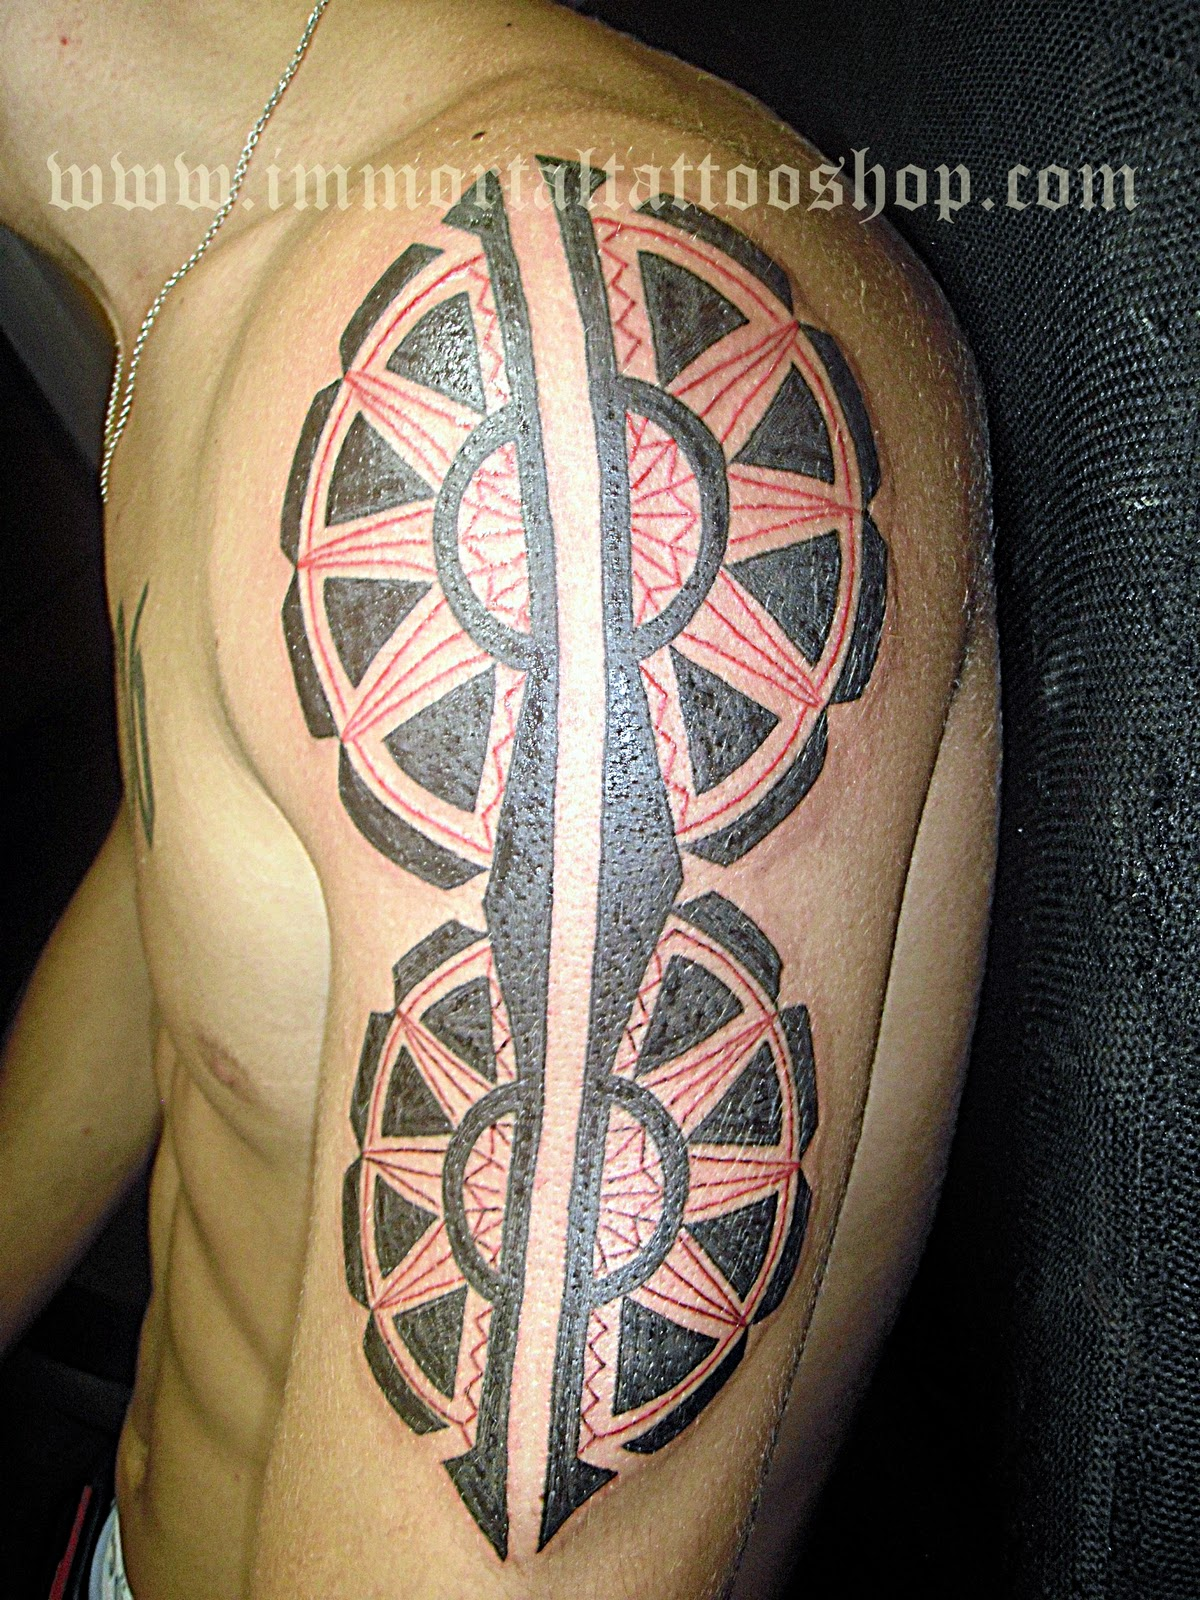 filipinotattoo pinoy tattoo filipino tribal tattoo. Black Bedroom Furniture Sets. Home Design Ideas